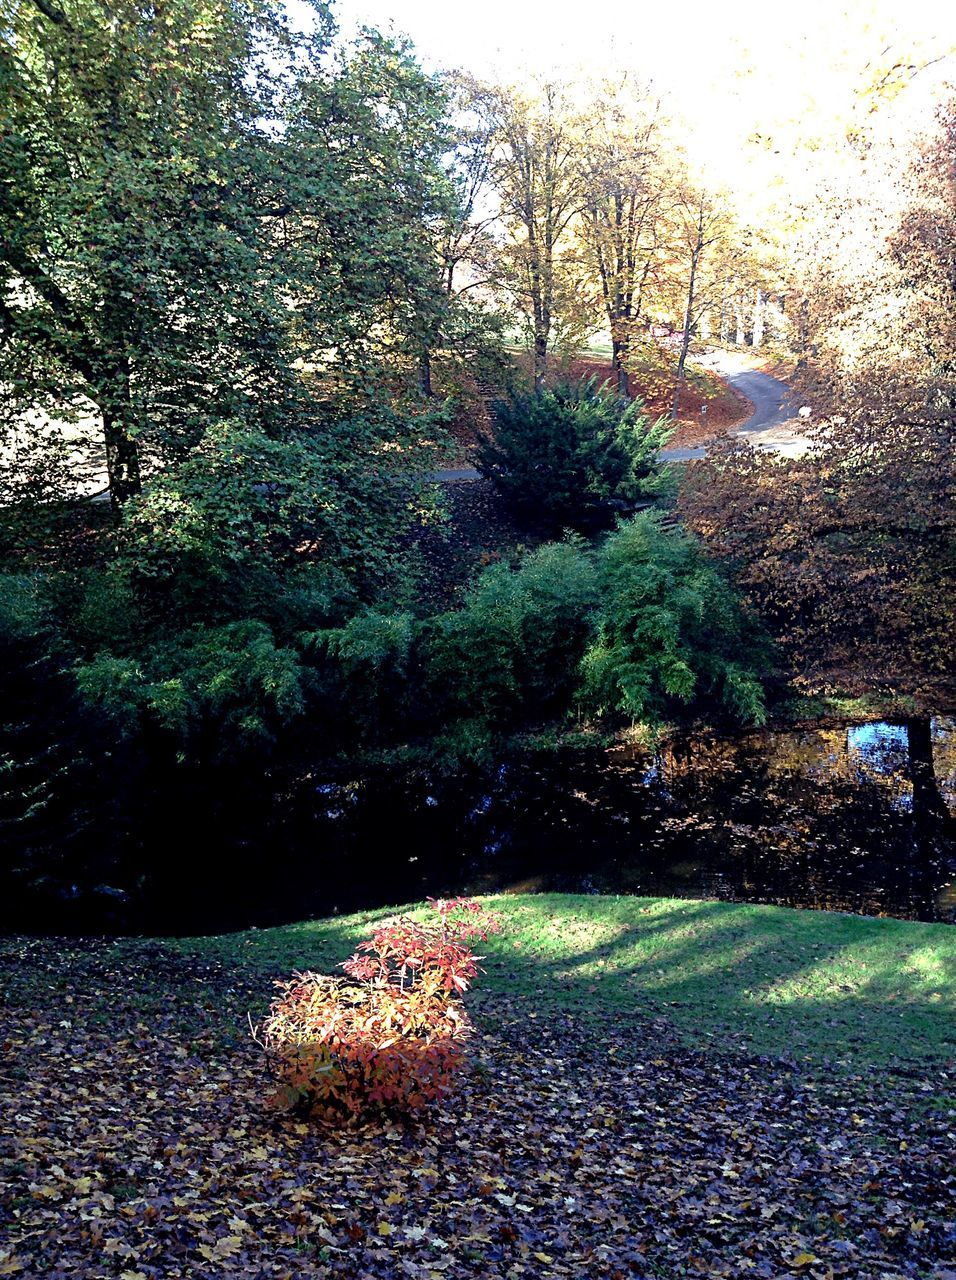 autumn, nature, tree, change, leaf, beauty in nature, tranquility, no people, outdoors, growth, day, plant, scenics, grass